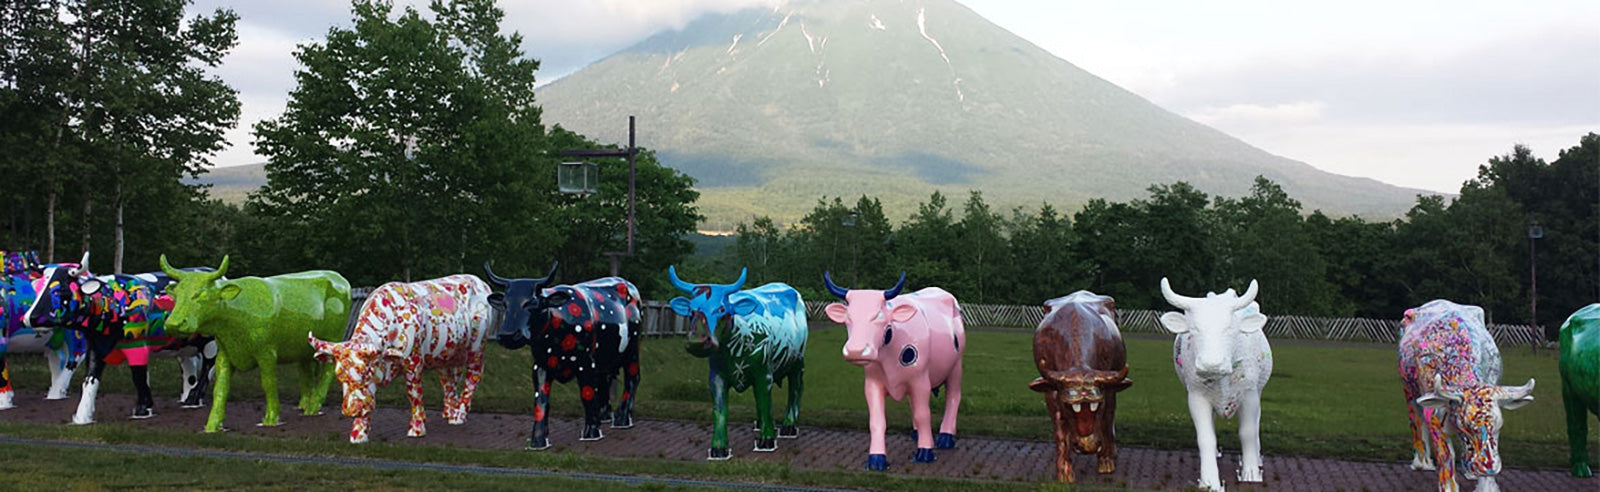 Cow Parade Niseko MAMIMU Manhole Cow